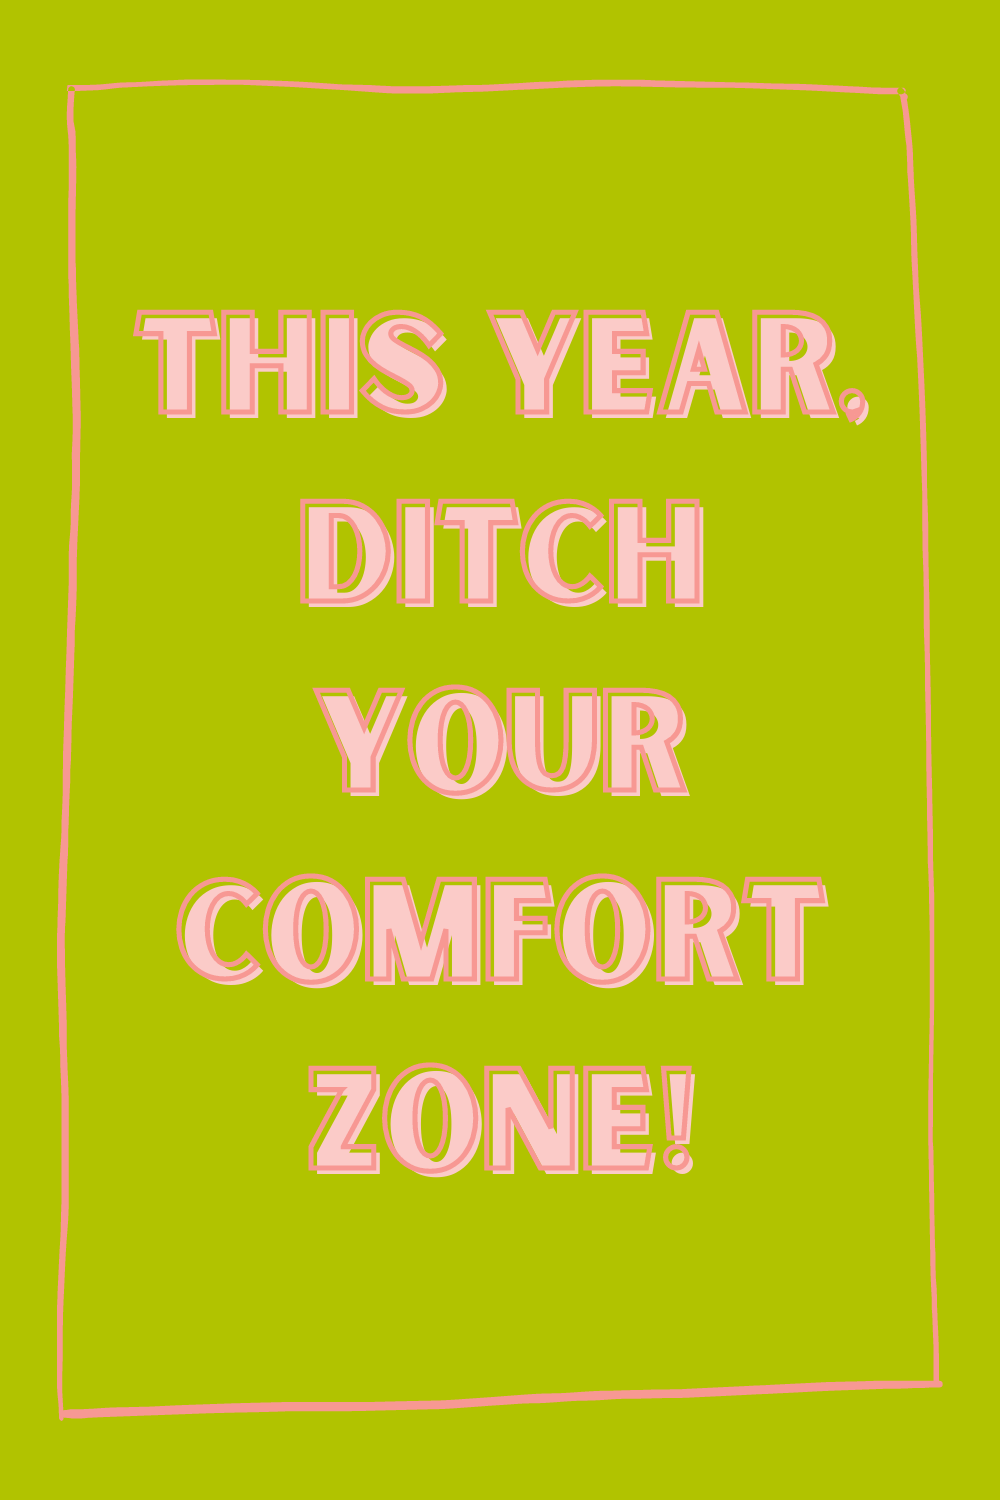 Comfort Zone Quotes Goals for New Years